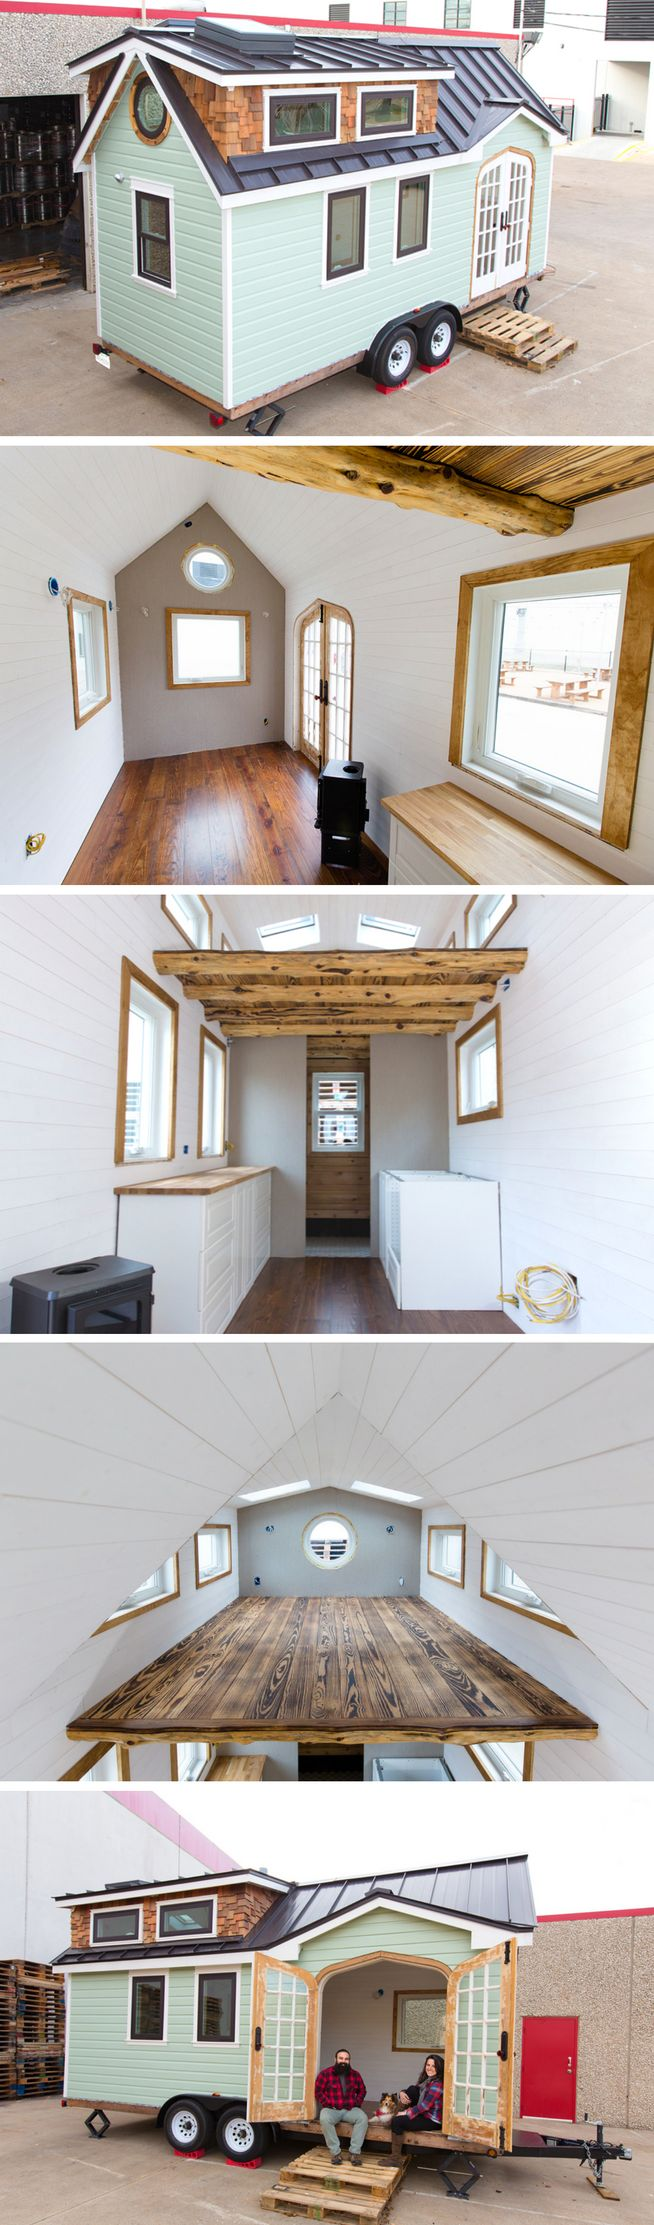 best images about Cabin Ideas on Pinterest Cabin Small houses